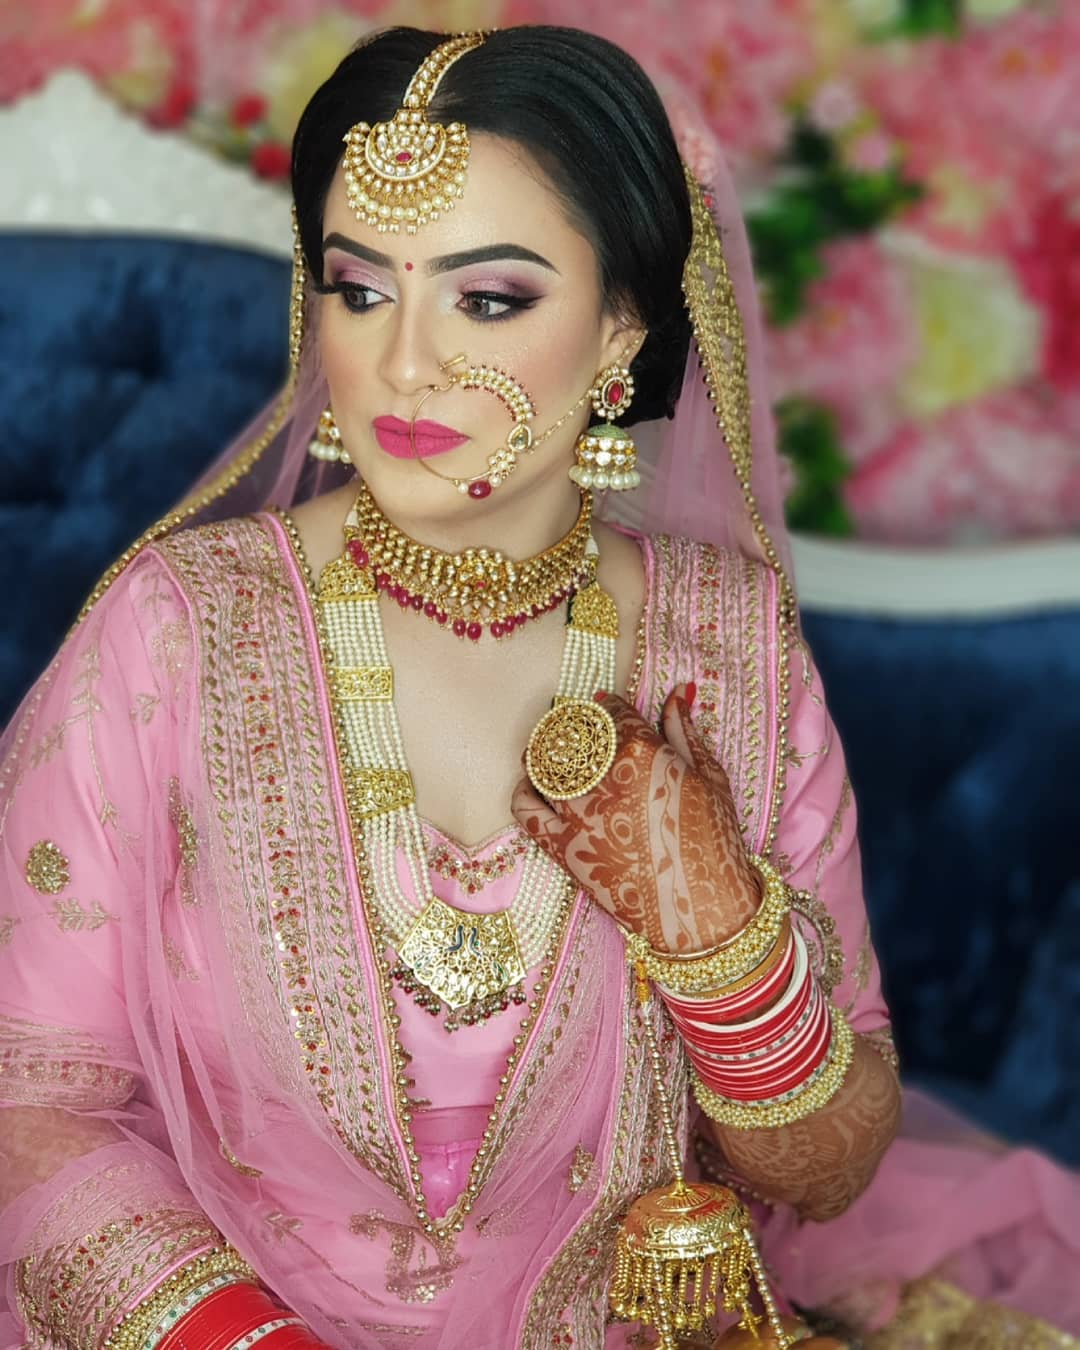 Punjabi natural beauty in bridal makeup with jewellery, stylish hairstyles free images download hd